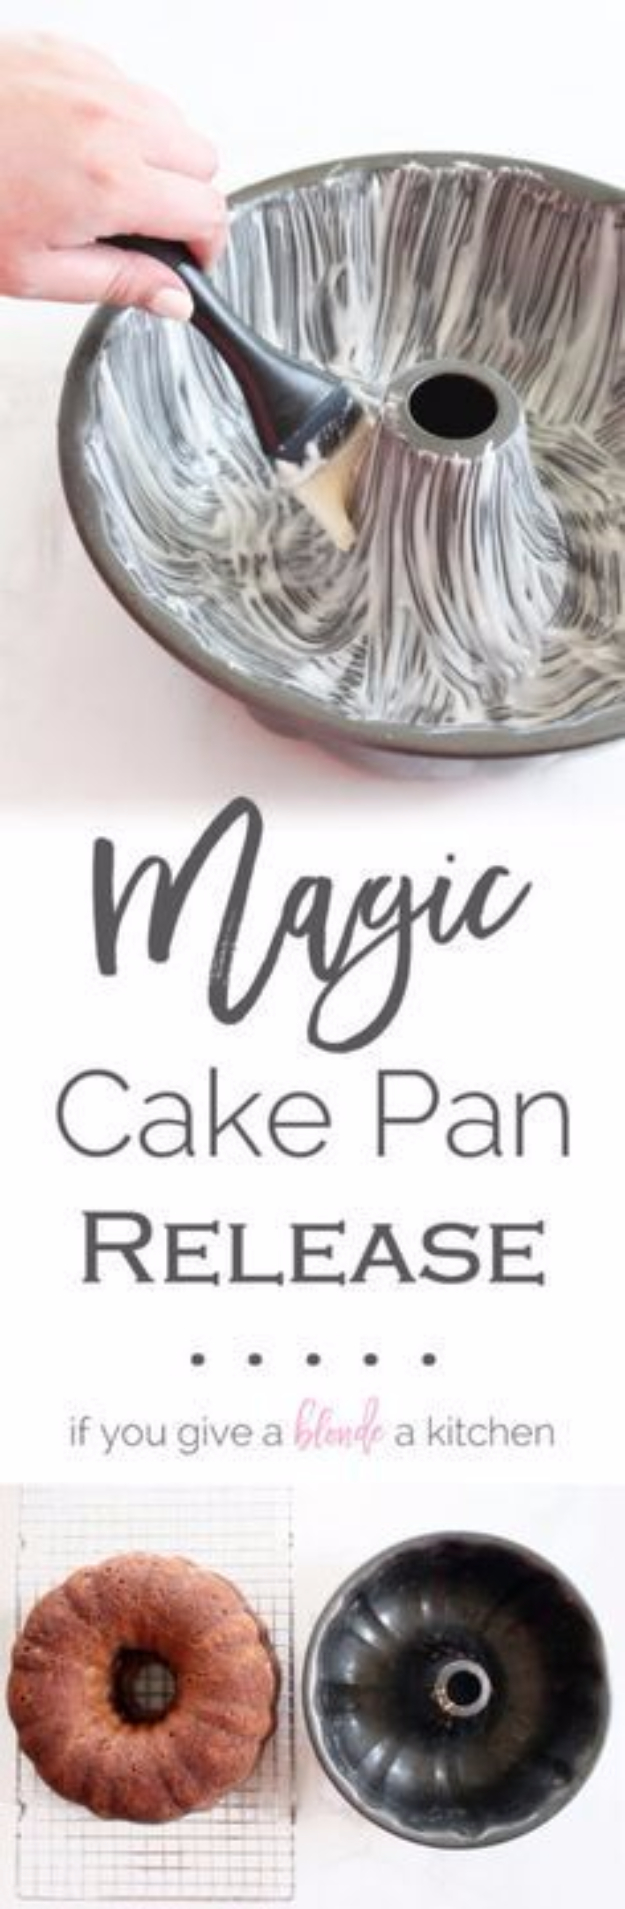 Best Baking Hacks - Magic Cake Pan Release - DIY Cooking Tips and Tricks for Baking Recipes - Quick Ways to Bake Cake, Cupcakes, Desserts and Cookies - Kitchen Lifehacks for Bakers